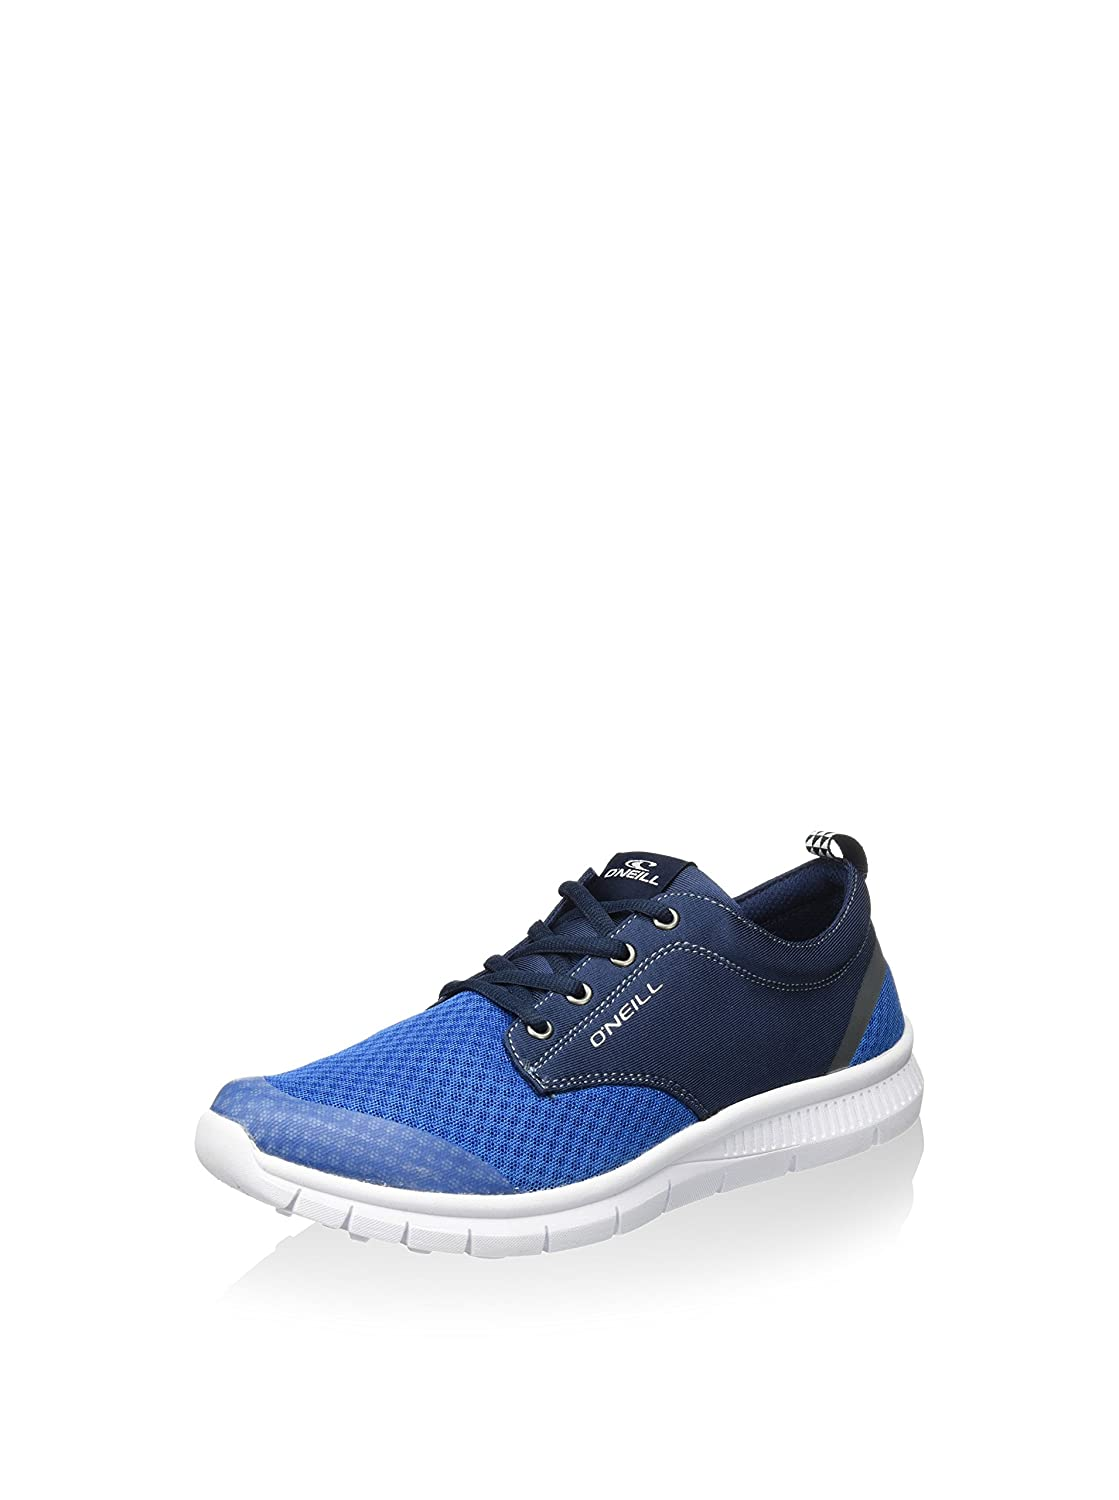 O'Neill Herren Fakey It Men Turnschuhe, Blau, 42 EU